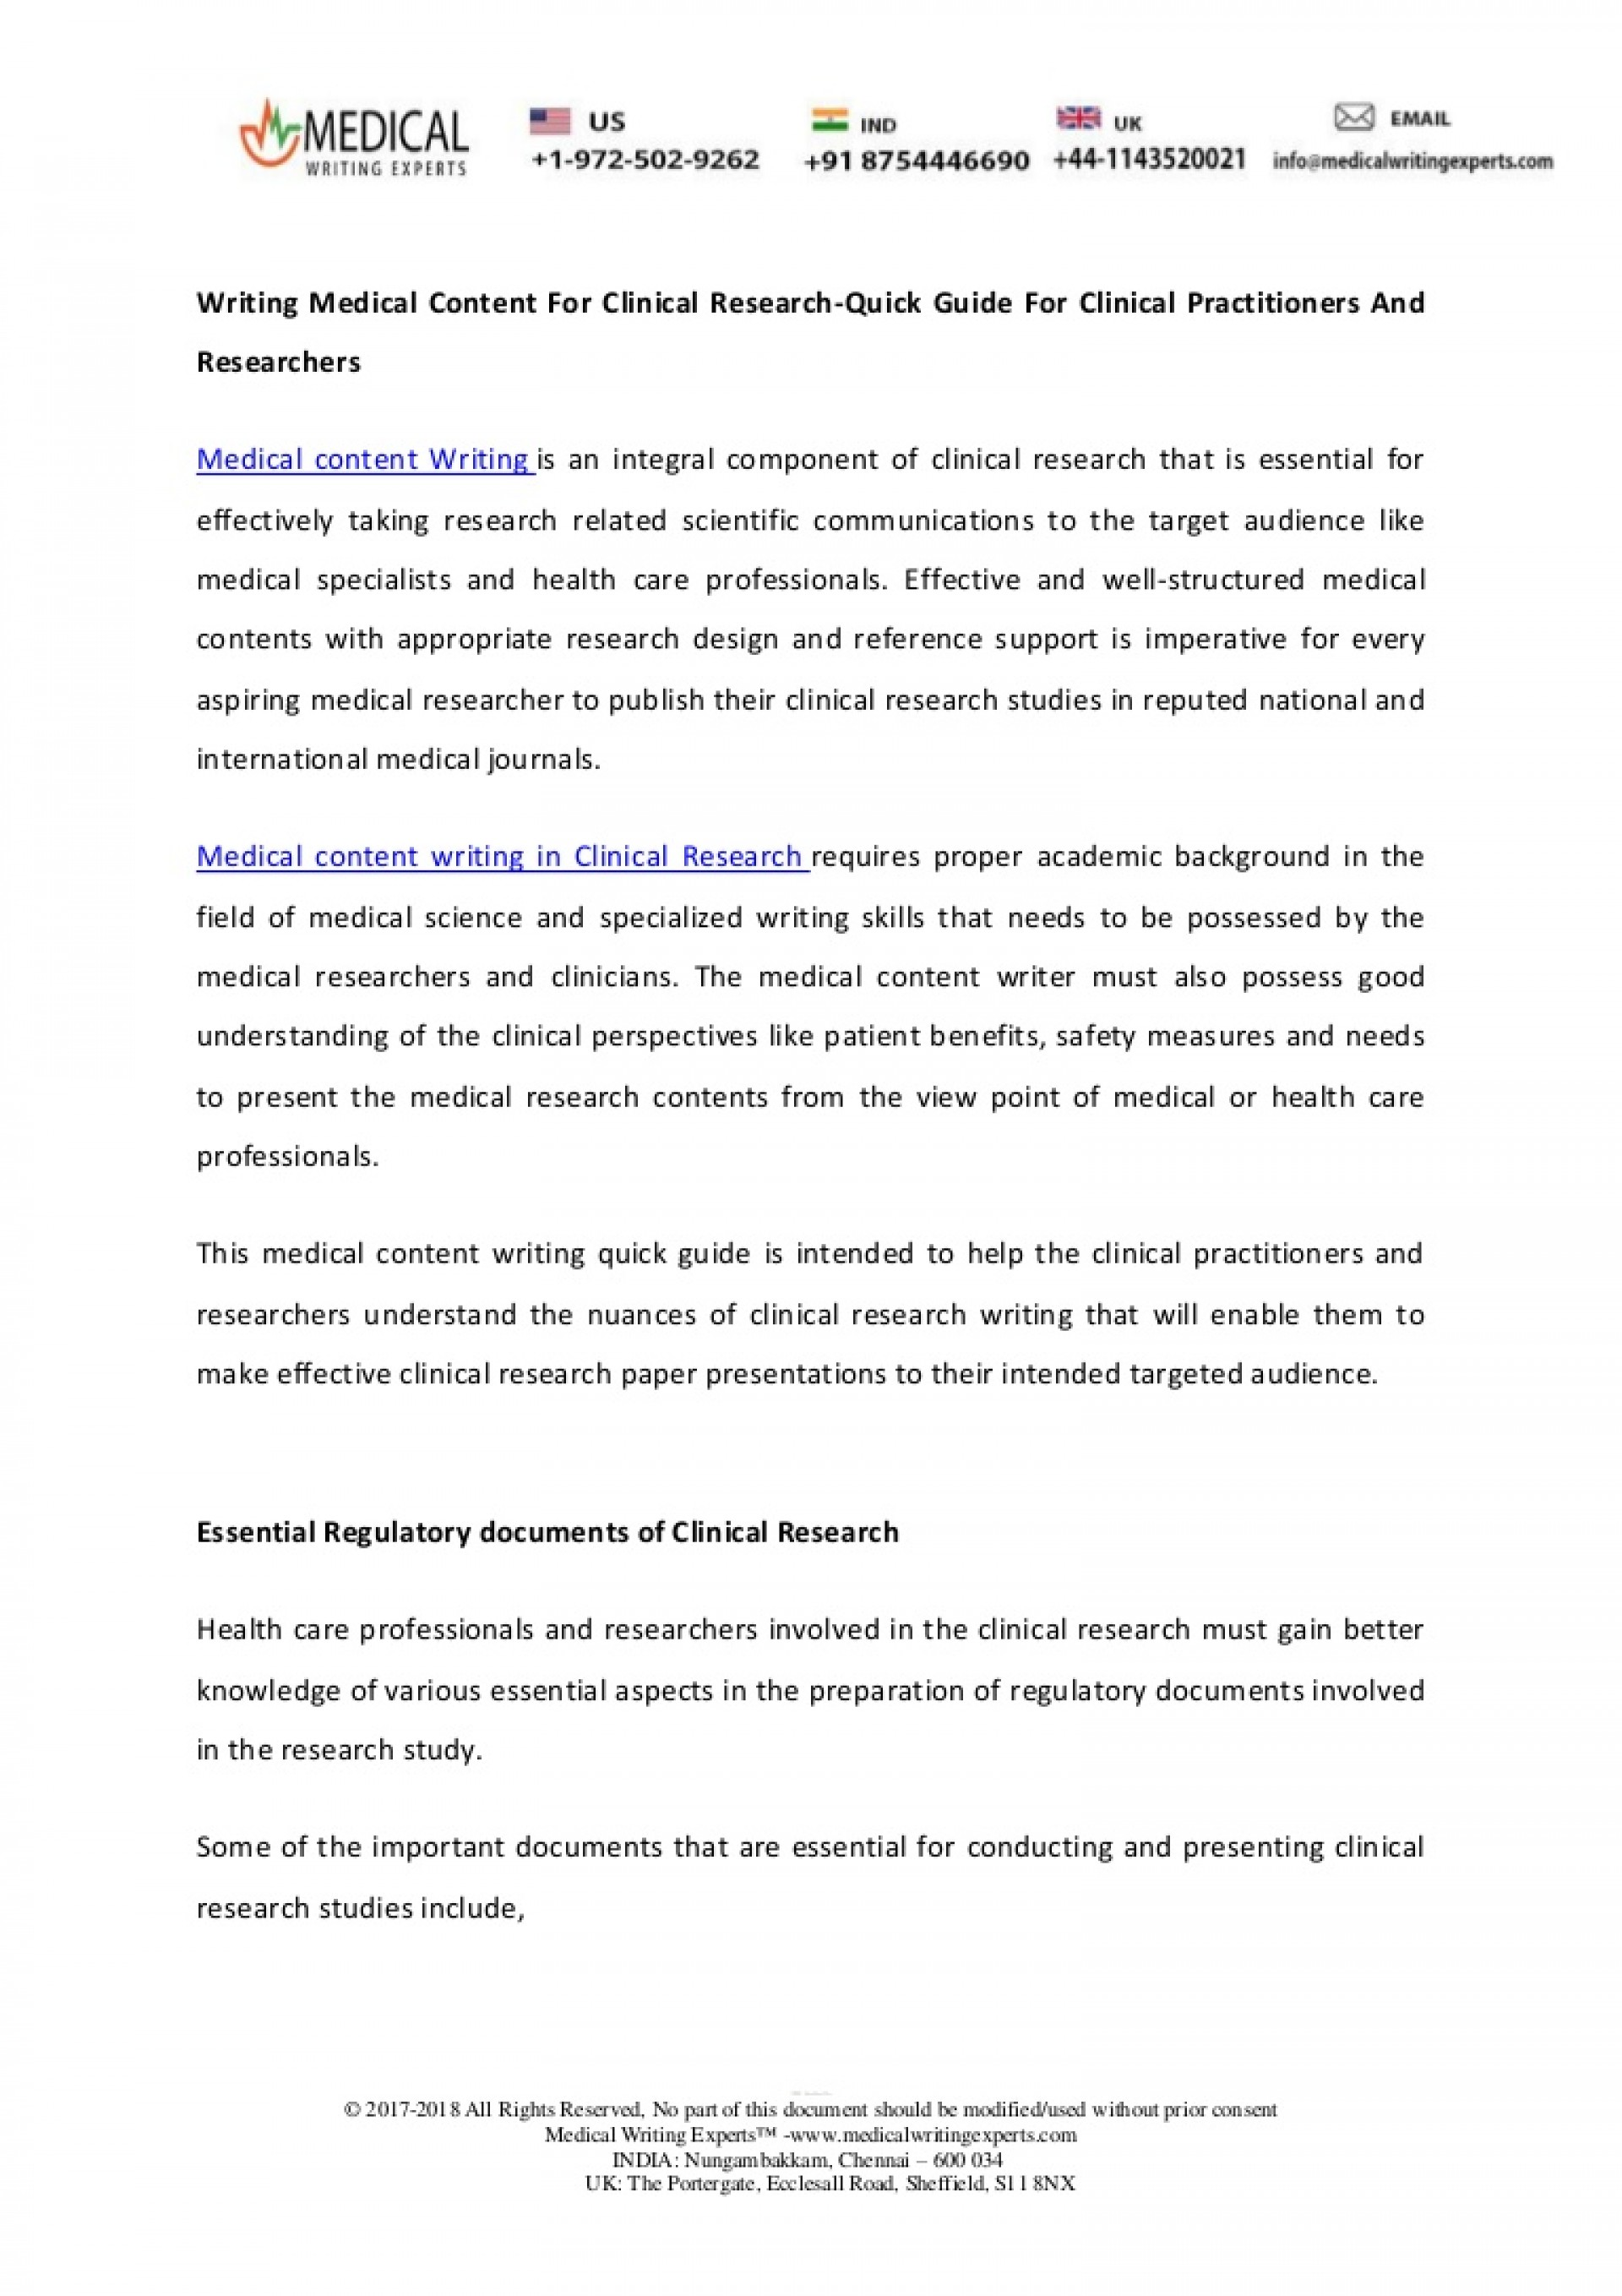 025 Research Paper Writingmedicalcontentforclinicalresearch Quickguideforclinicalpractitioners Thumbnail How To Publish Medical In Breathtaking India 1920